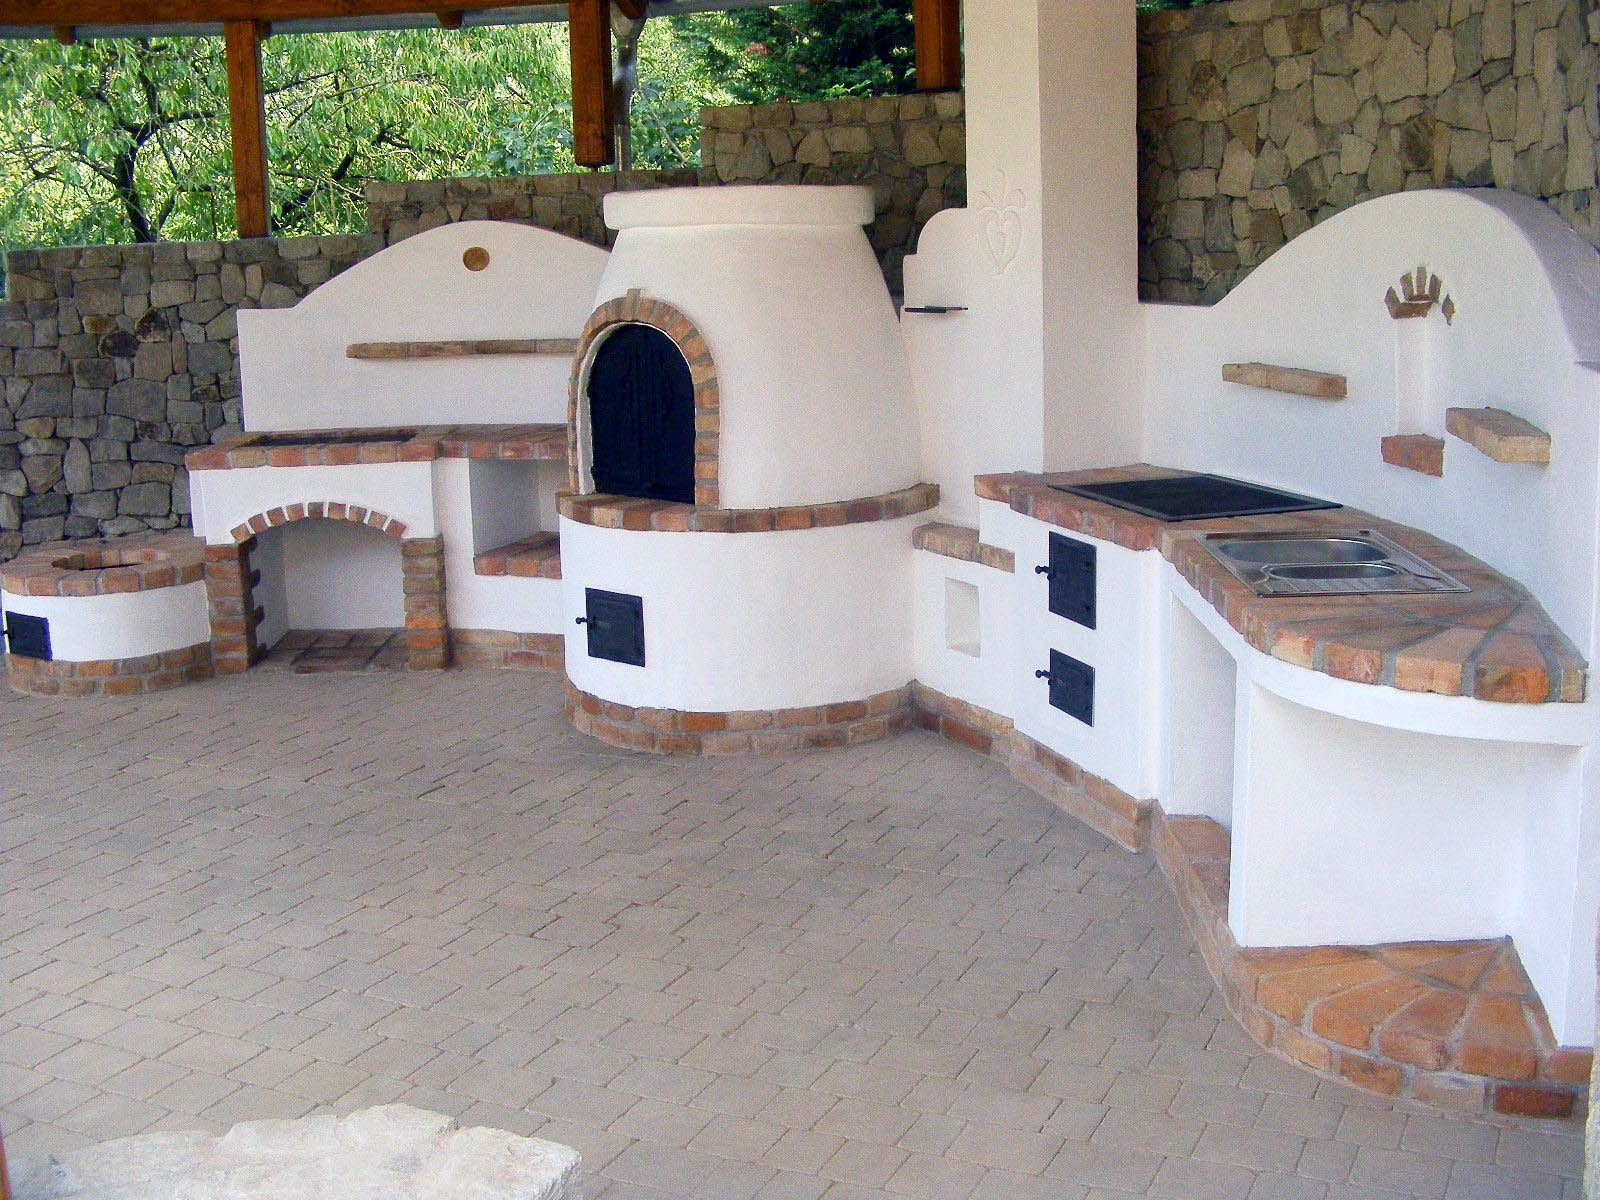 27 Incredible Outdoor Cooking Area Suggestions Your Guests Will Certainly Go Crazy For Outdoor Kitchen Outdoor Kitchen Design Backyard Kitchen